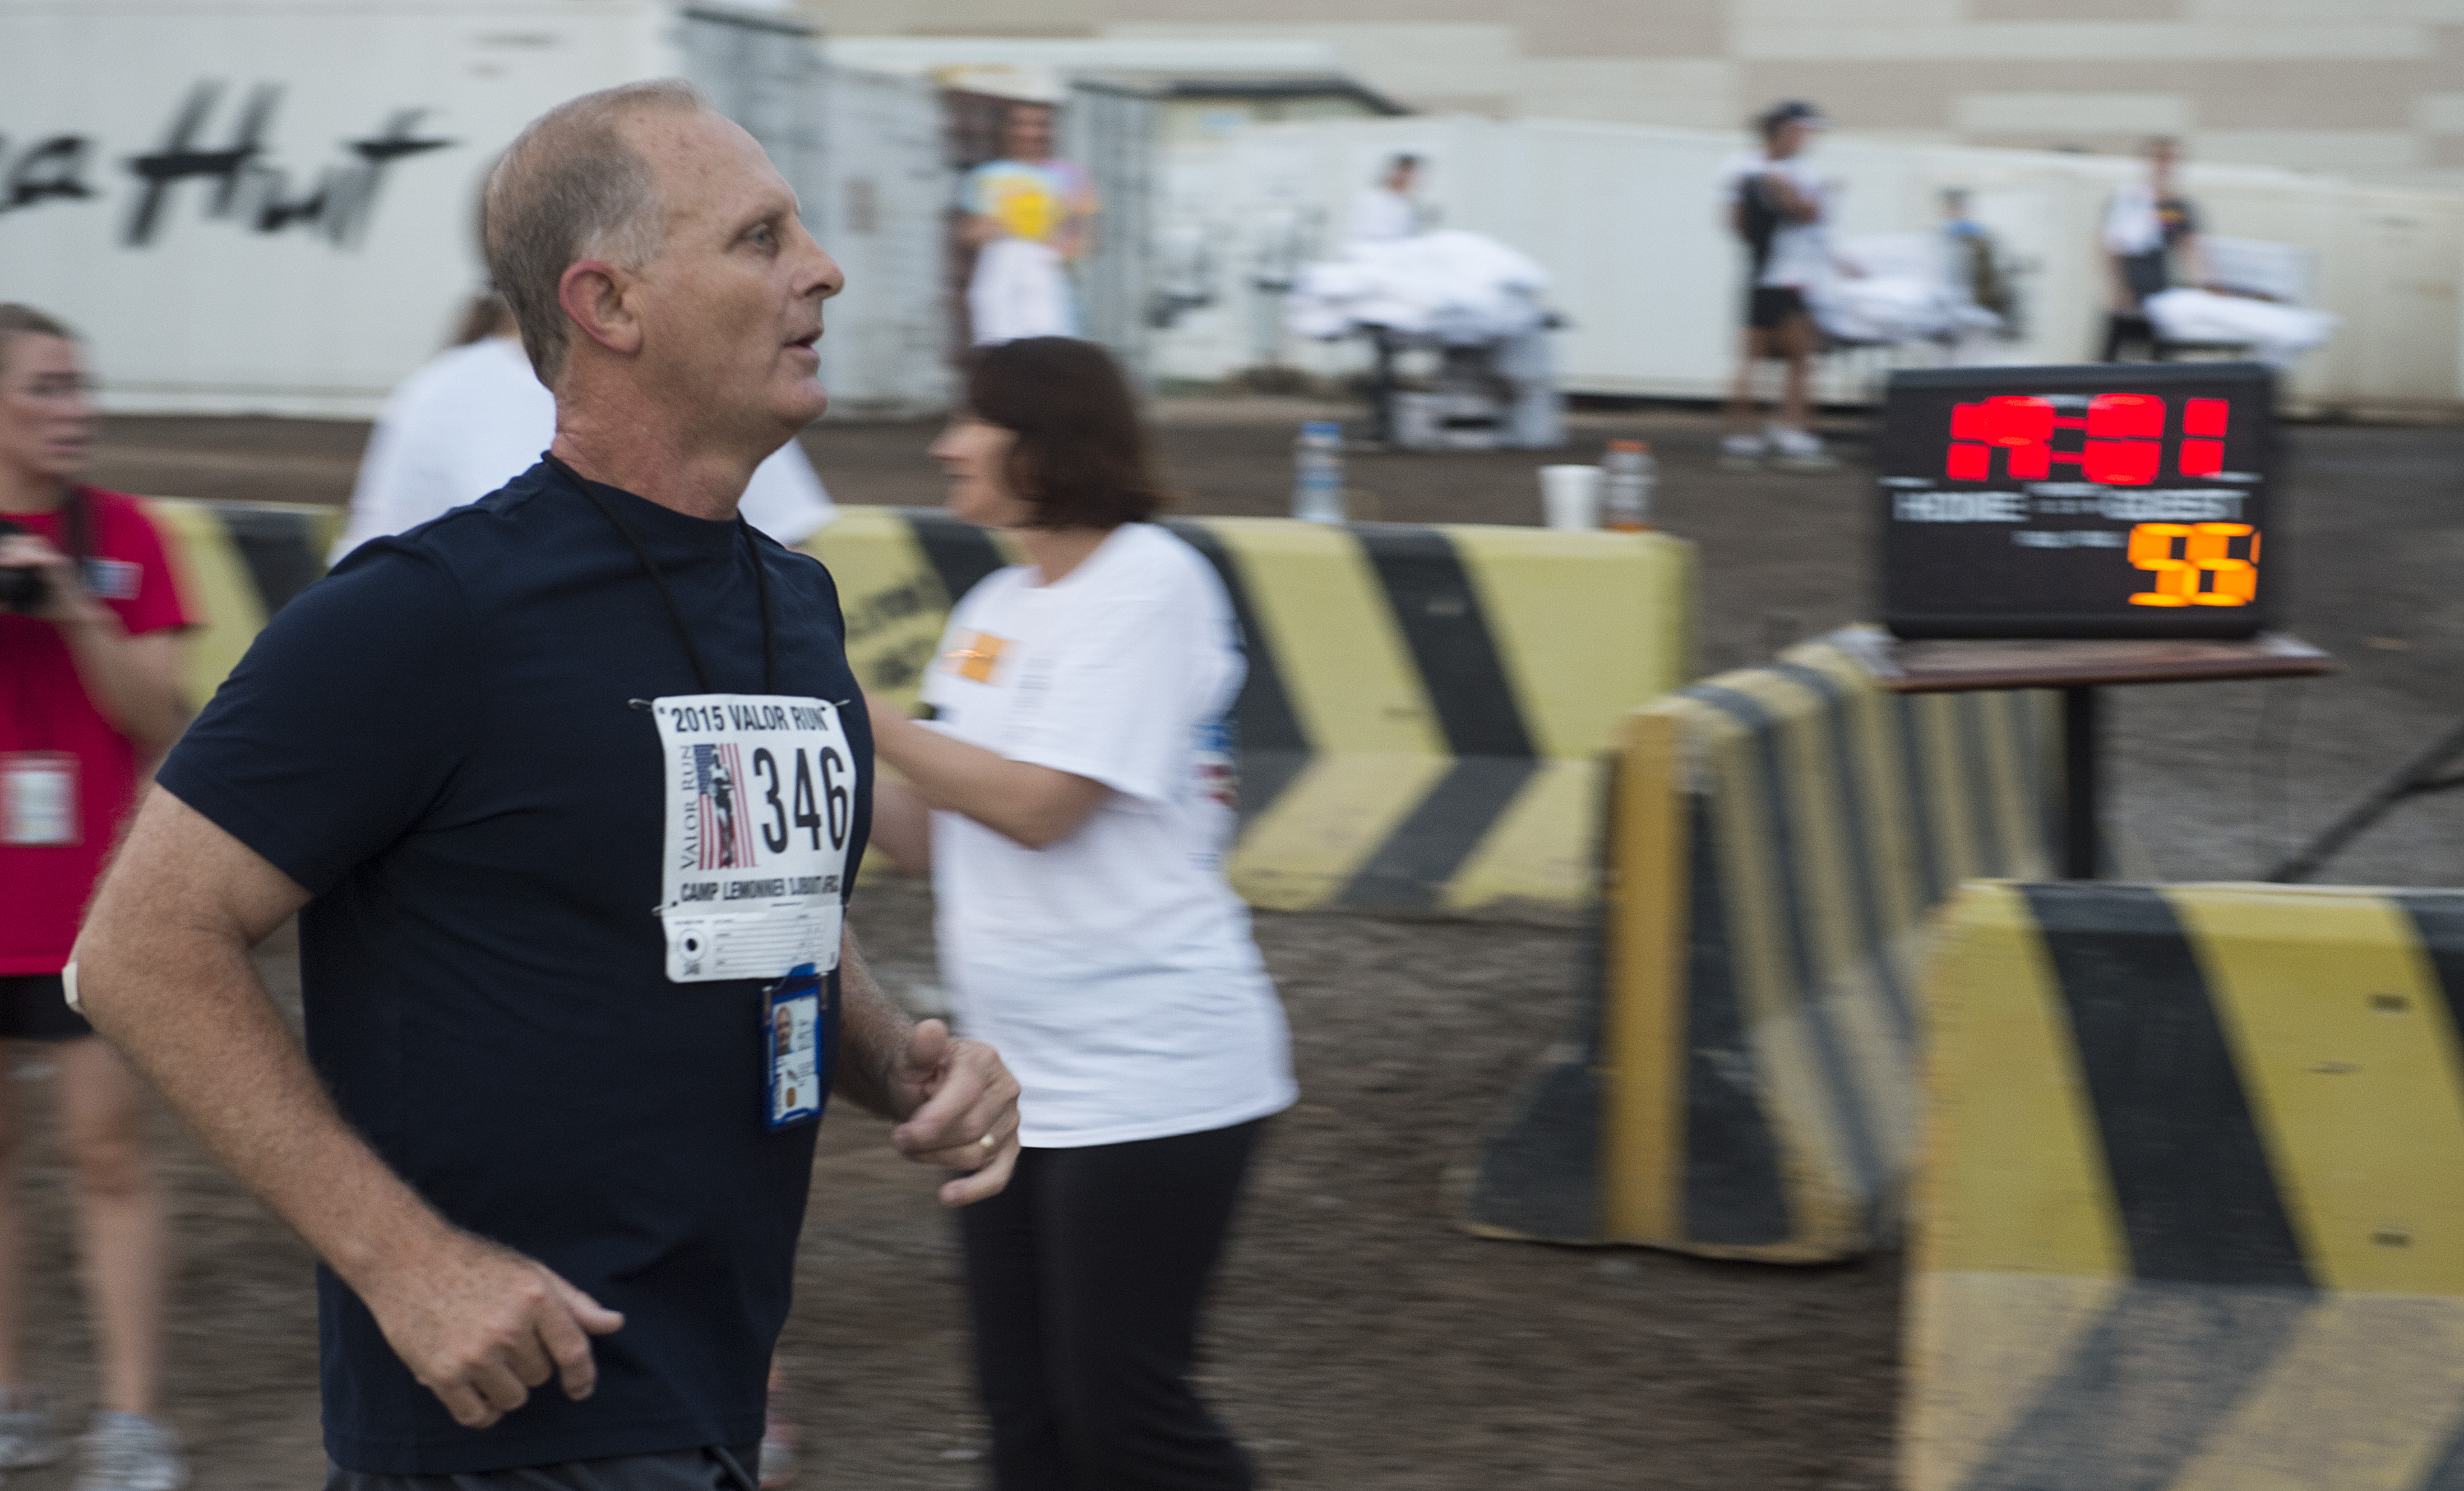 A Valor Run participant crosses the finish line Oct. 21, 2015, at Camp Lemonnier, Djibouti. More than 800 members of Combined Joint Task Force-Horn of Africa and Camp Lemonnier ran a 5K or walked a 3K course in remembrance of fallen female service members. (U.S. Air Force photo by Senior Airman Peter Thompson/Released)